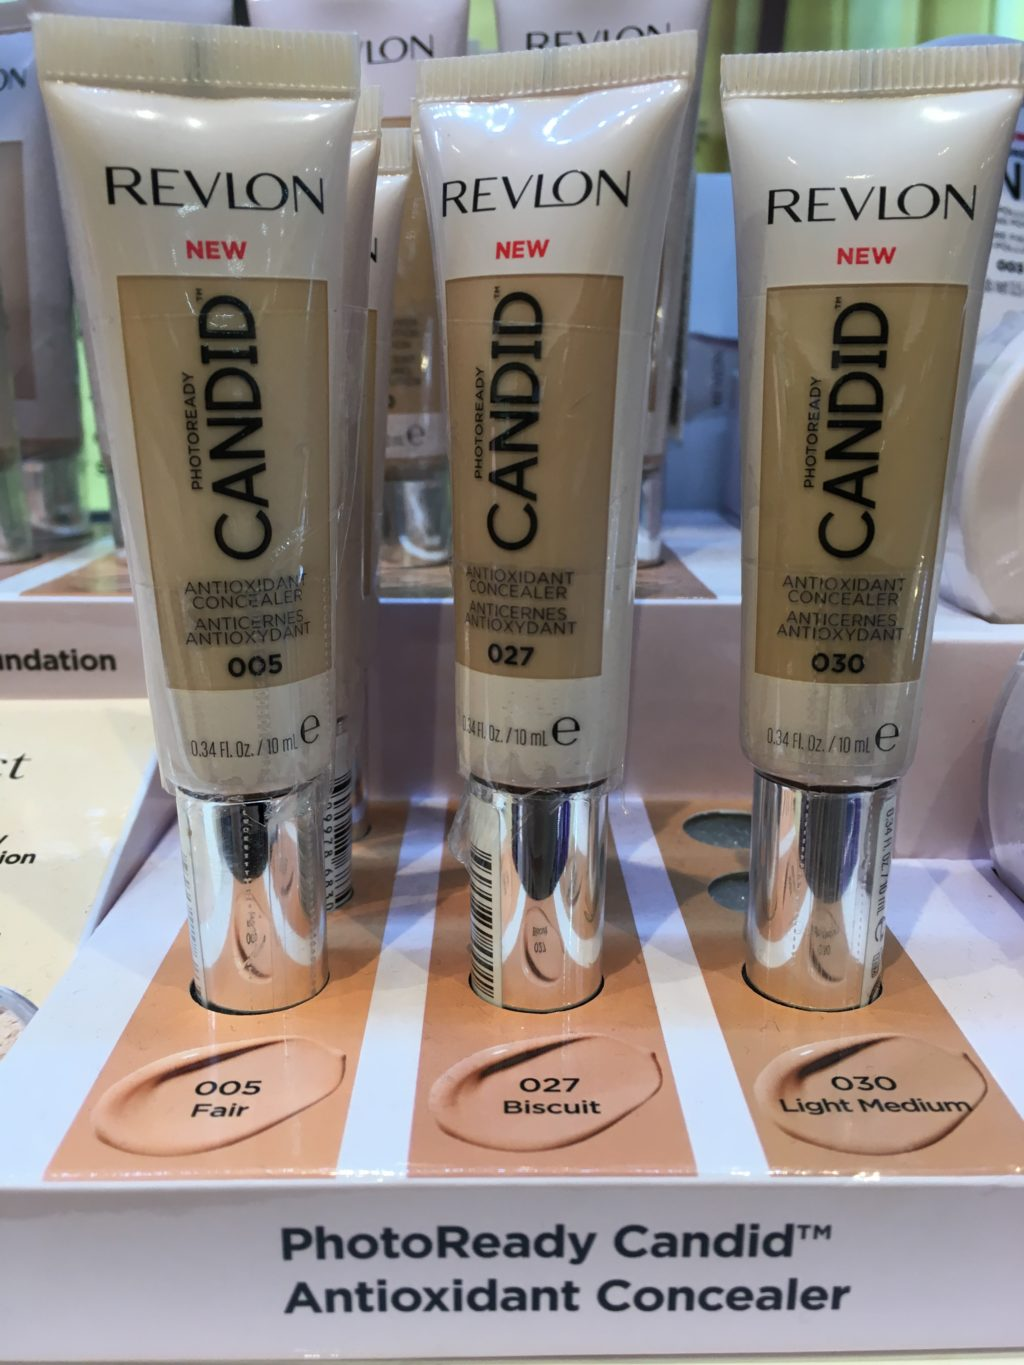 3 sets of Revlon PhotoReadt Candid concealer